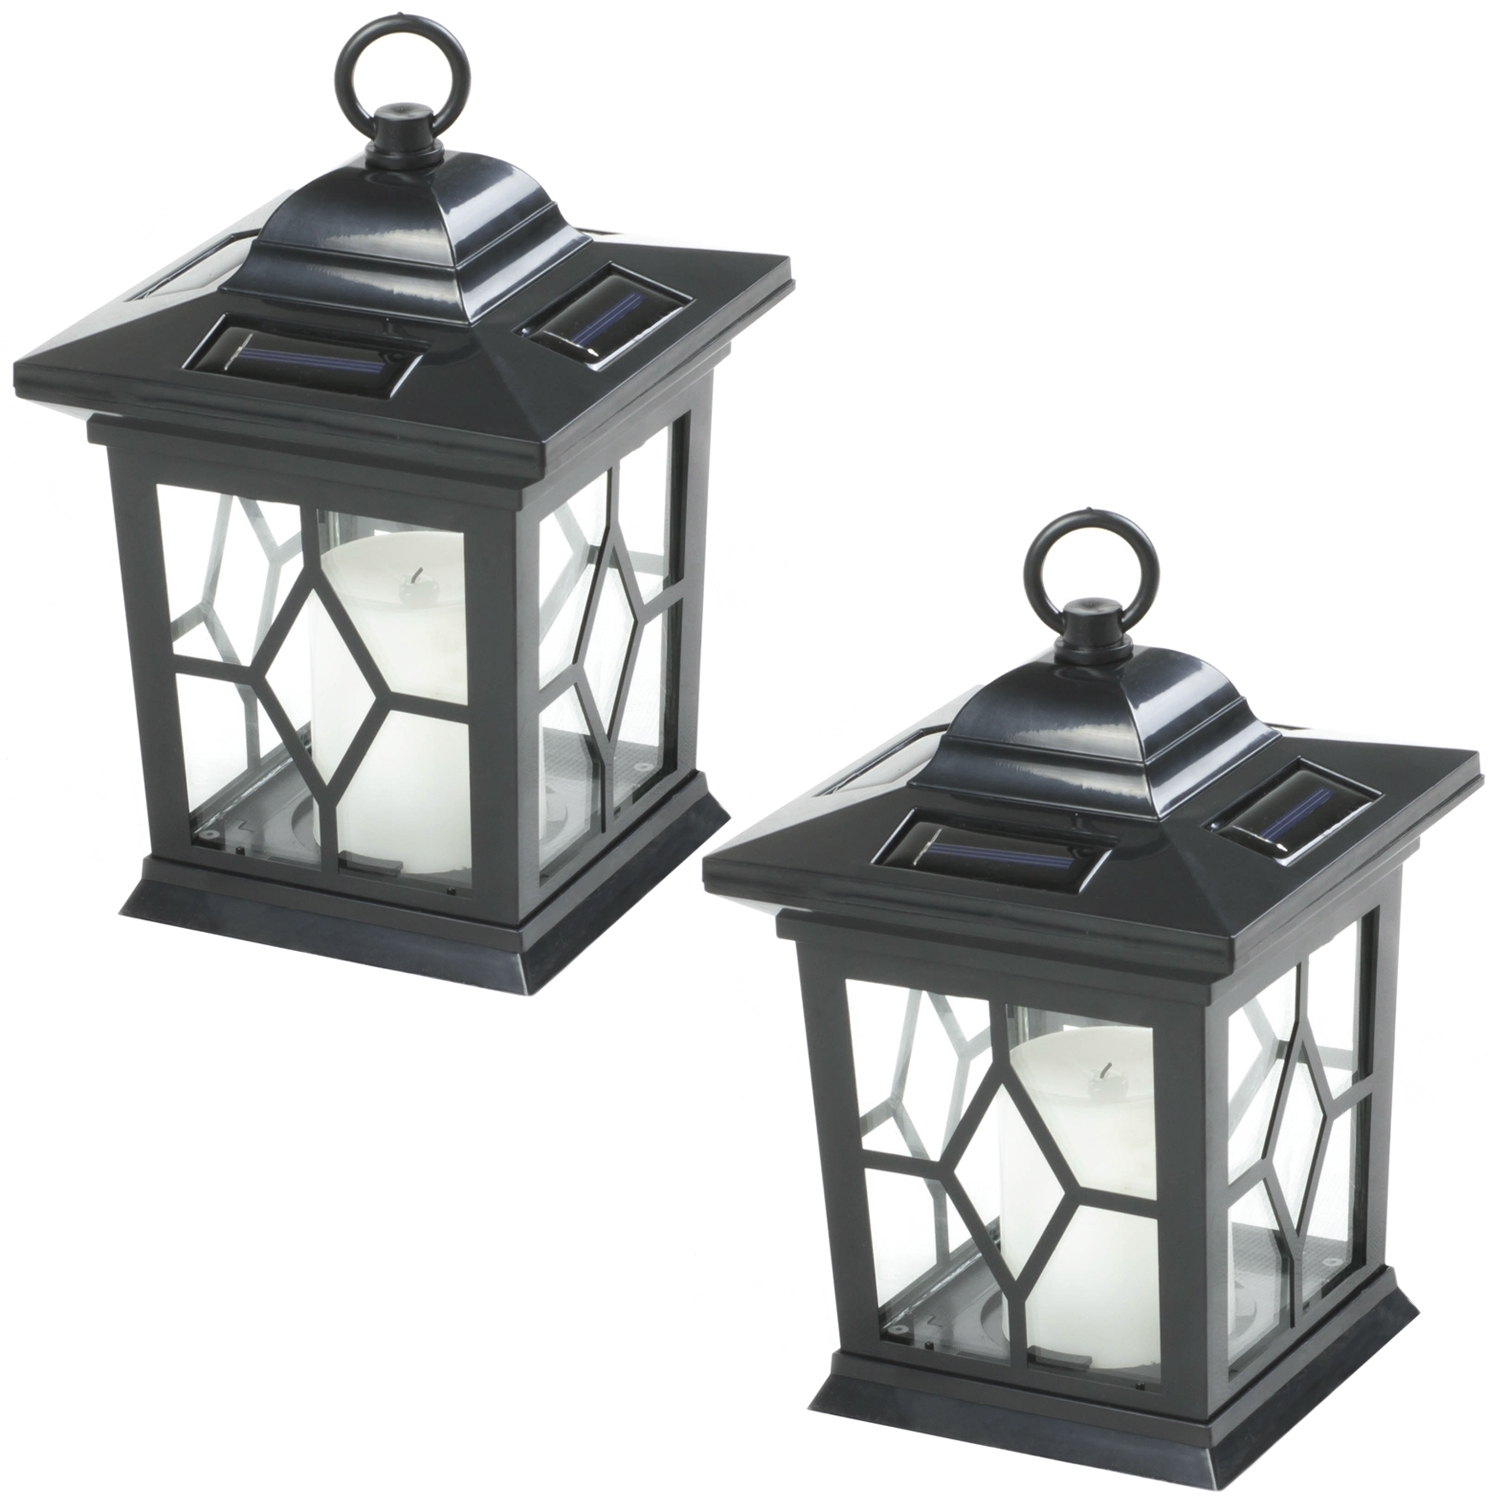 2 X Woodside Hanging Candle Lanterns | Lighting | Outdoor Value throughout Outdoor Candle Lanterns (Image 1 of 20)